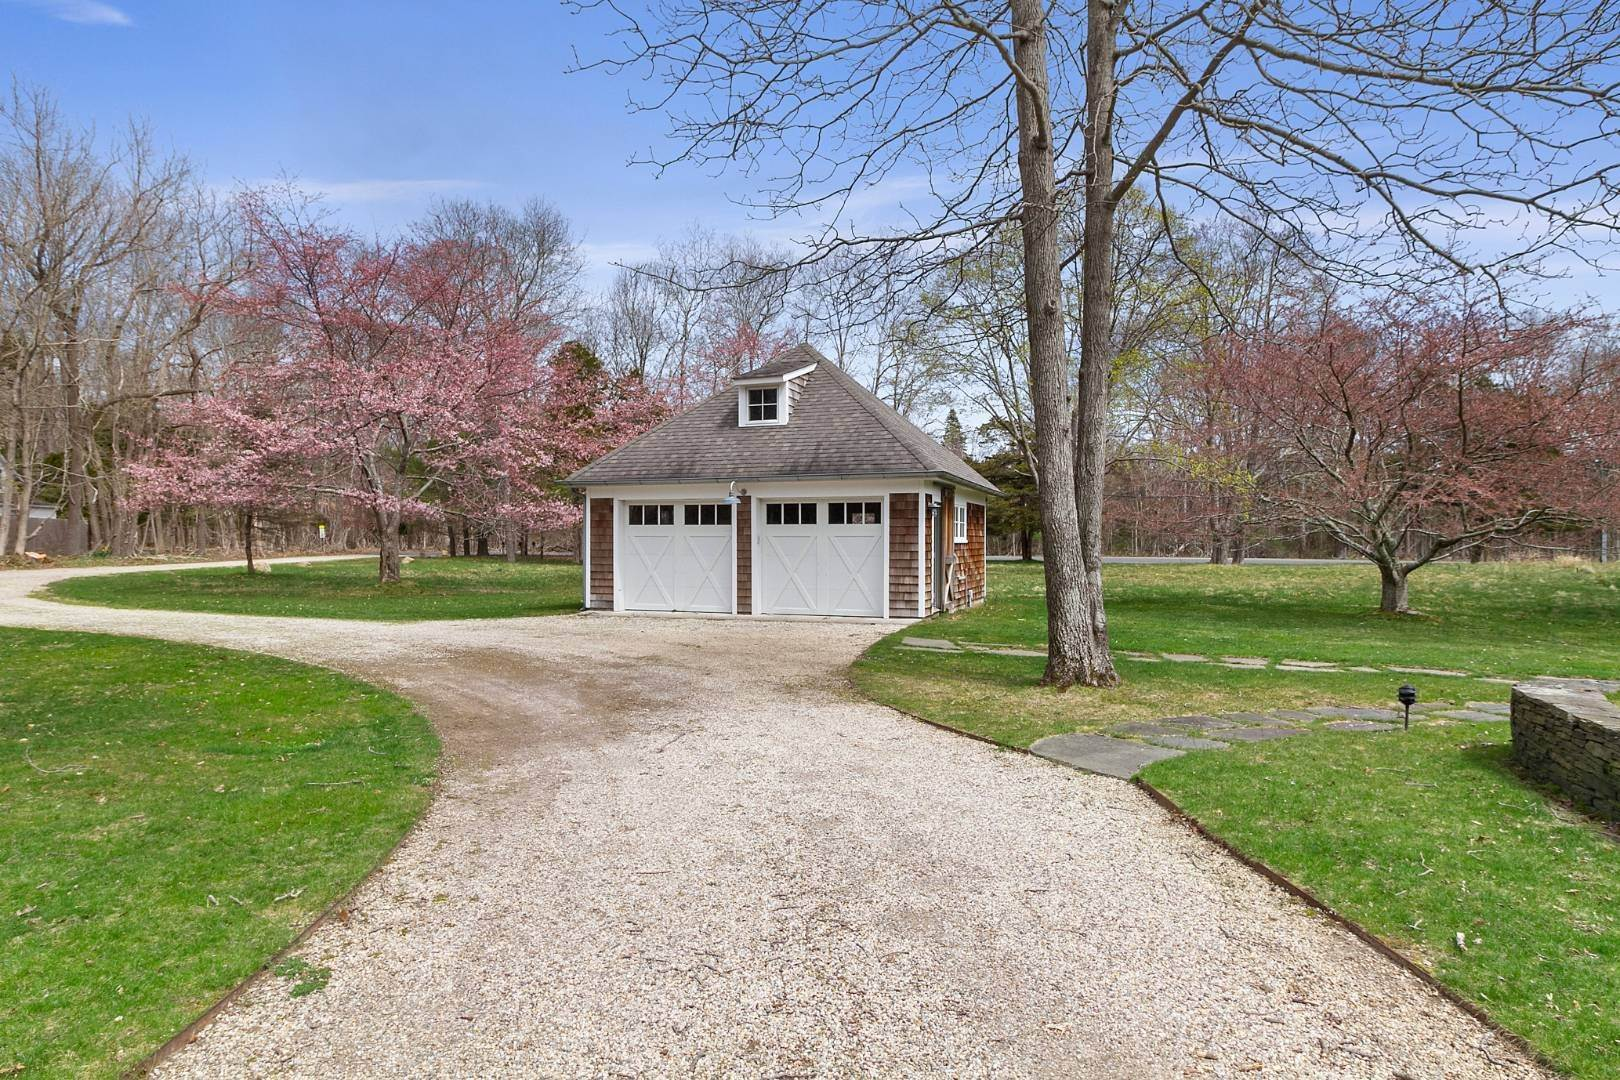 20. Single Family Home for Sale at Historic Springs Two-House Compound 104 Old Stone Hwy, East Hampton, NY 11937